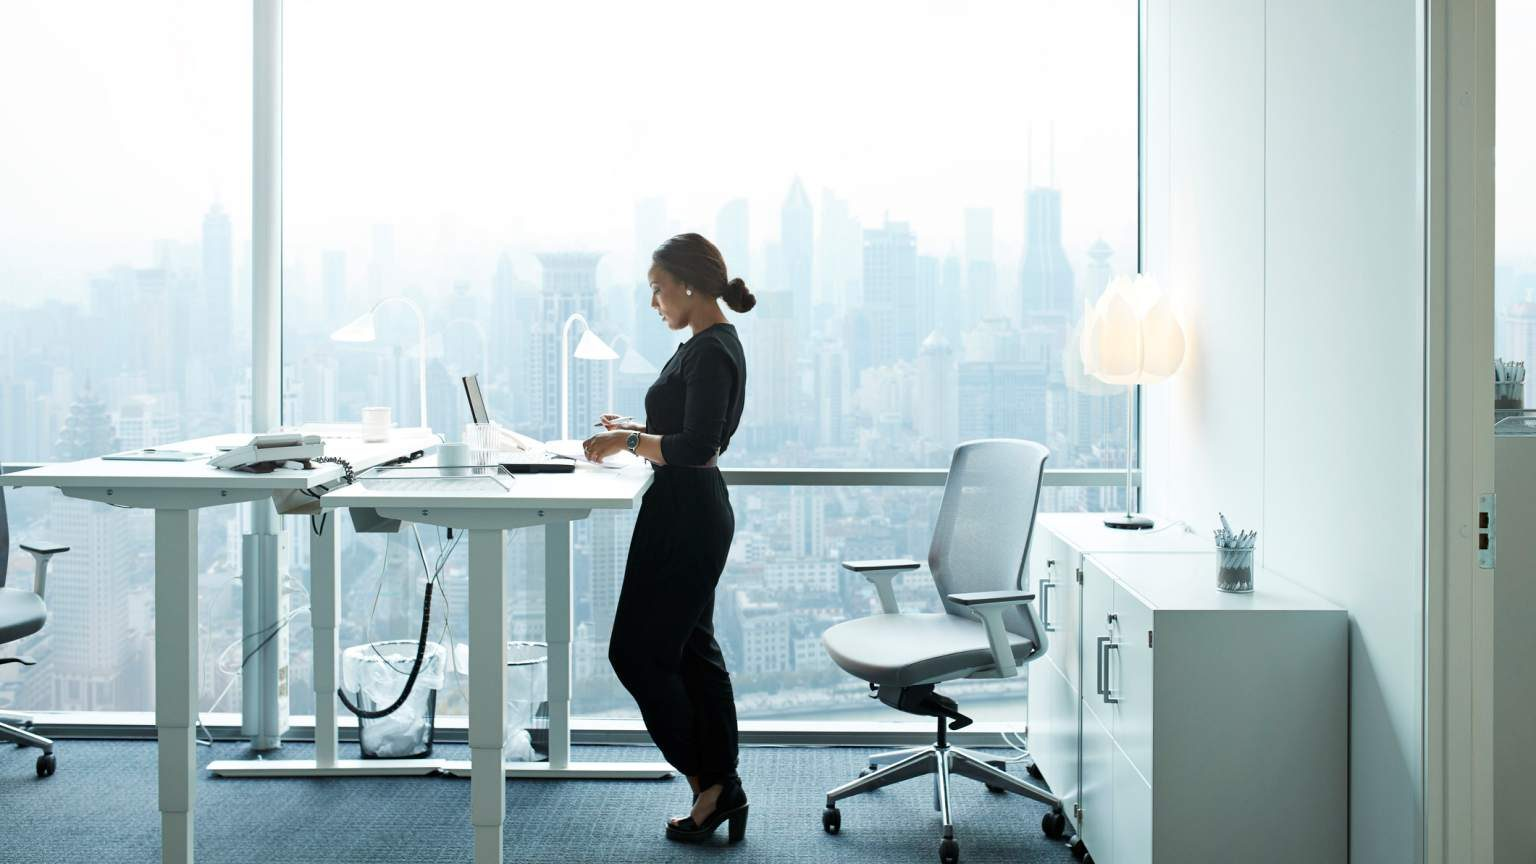 Elegant businesswoman working alone with laptop in office building